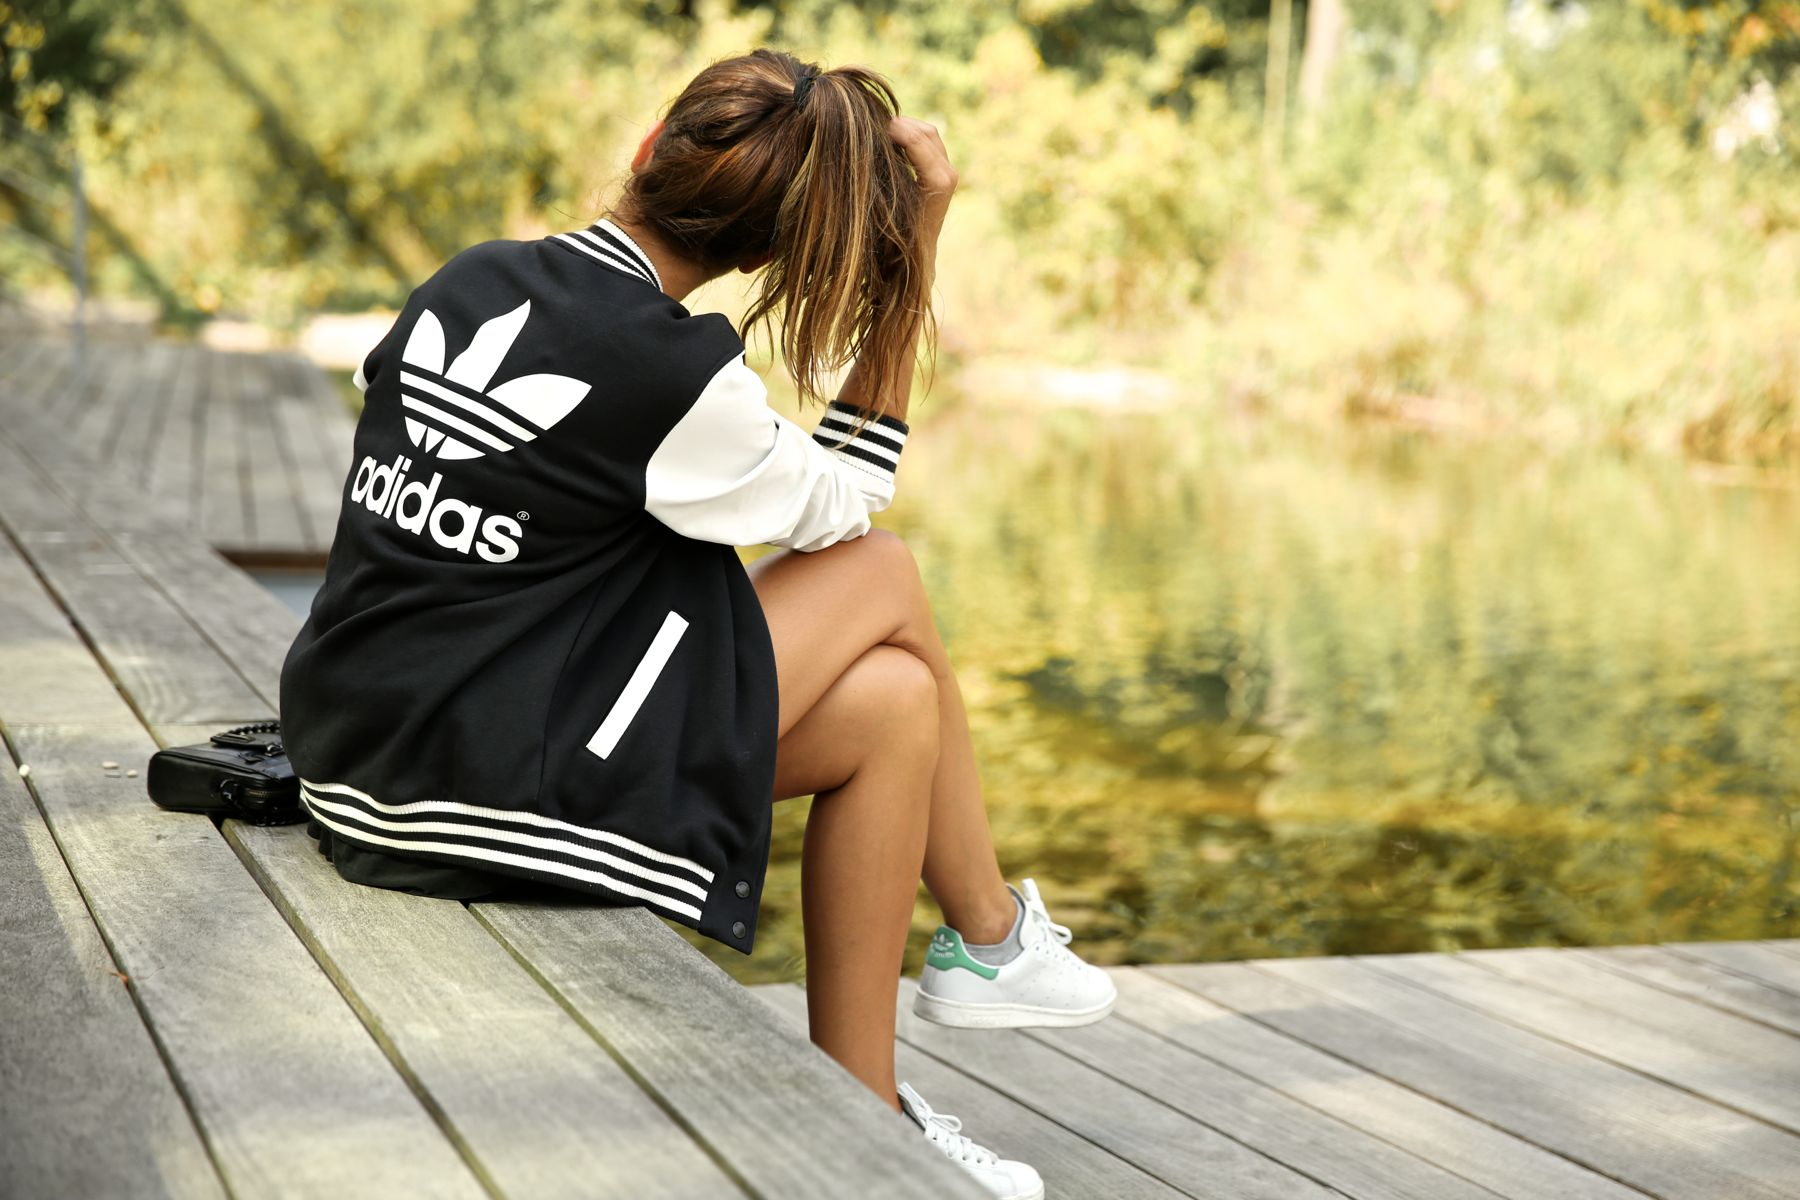 trendy_taste-look-outfit-street_style-ootd-blog-blogger-fashion_spain-moda_españa-stan_smith-adidas-herzo-sport_chic-baseball-chaqueta-shorts-12